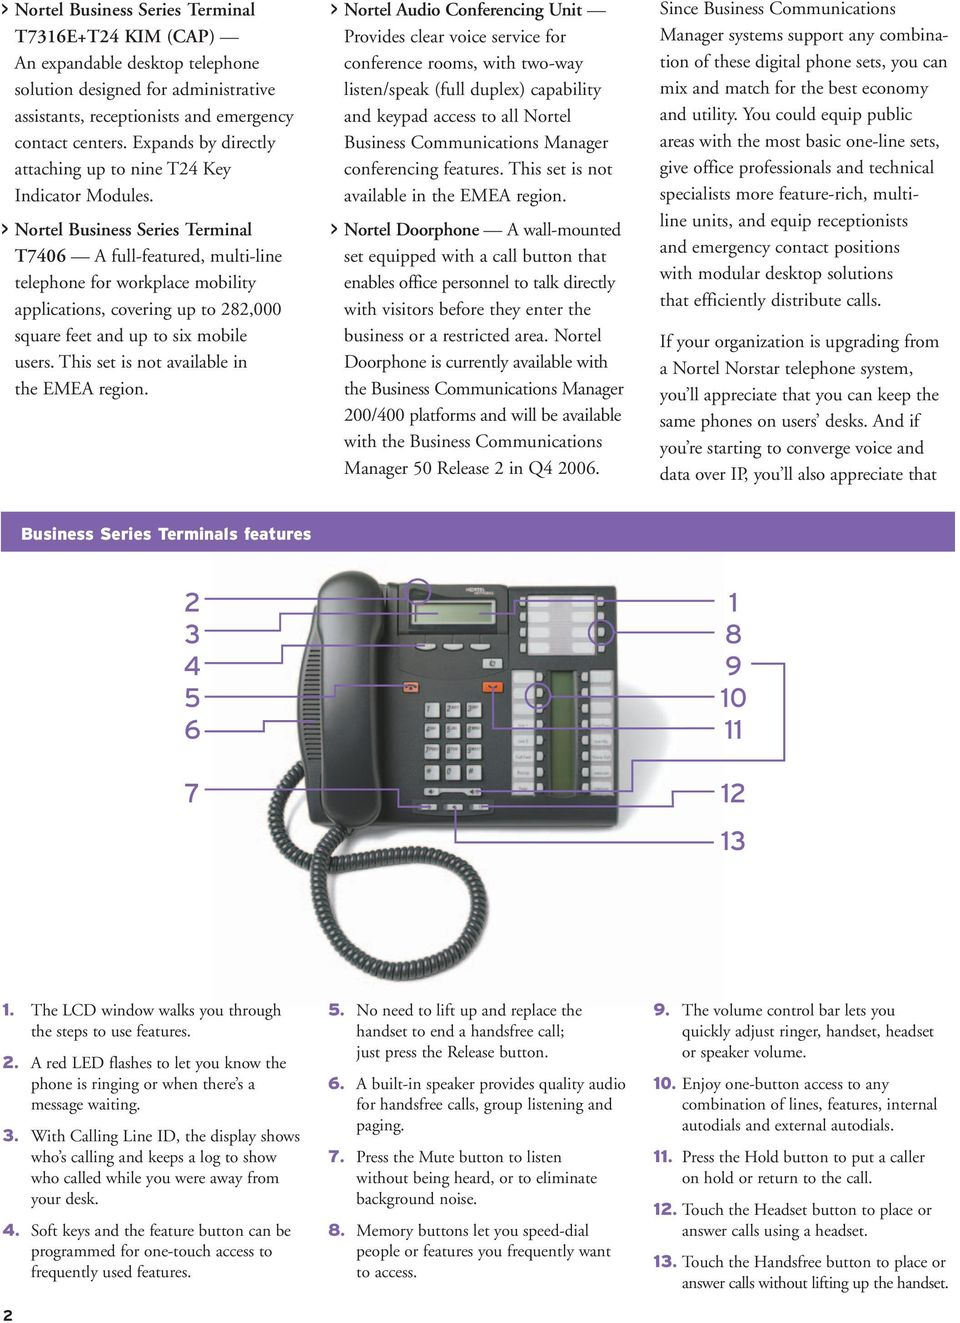 > Business Series Terminal T7406 A full-featured, multi-line telephone for workplace mobility applications, covering up to 282,000 square feet and up to six mobile users.